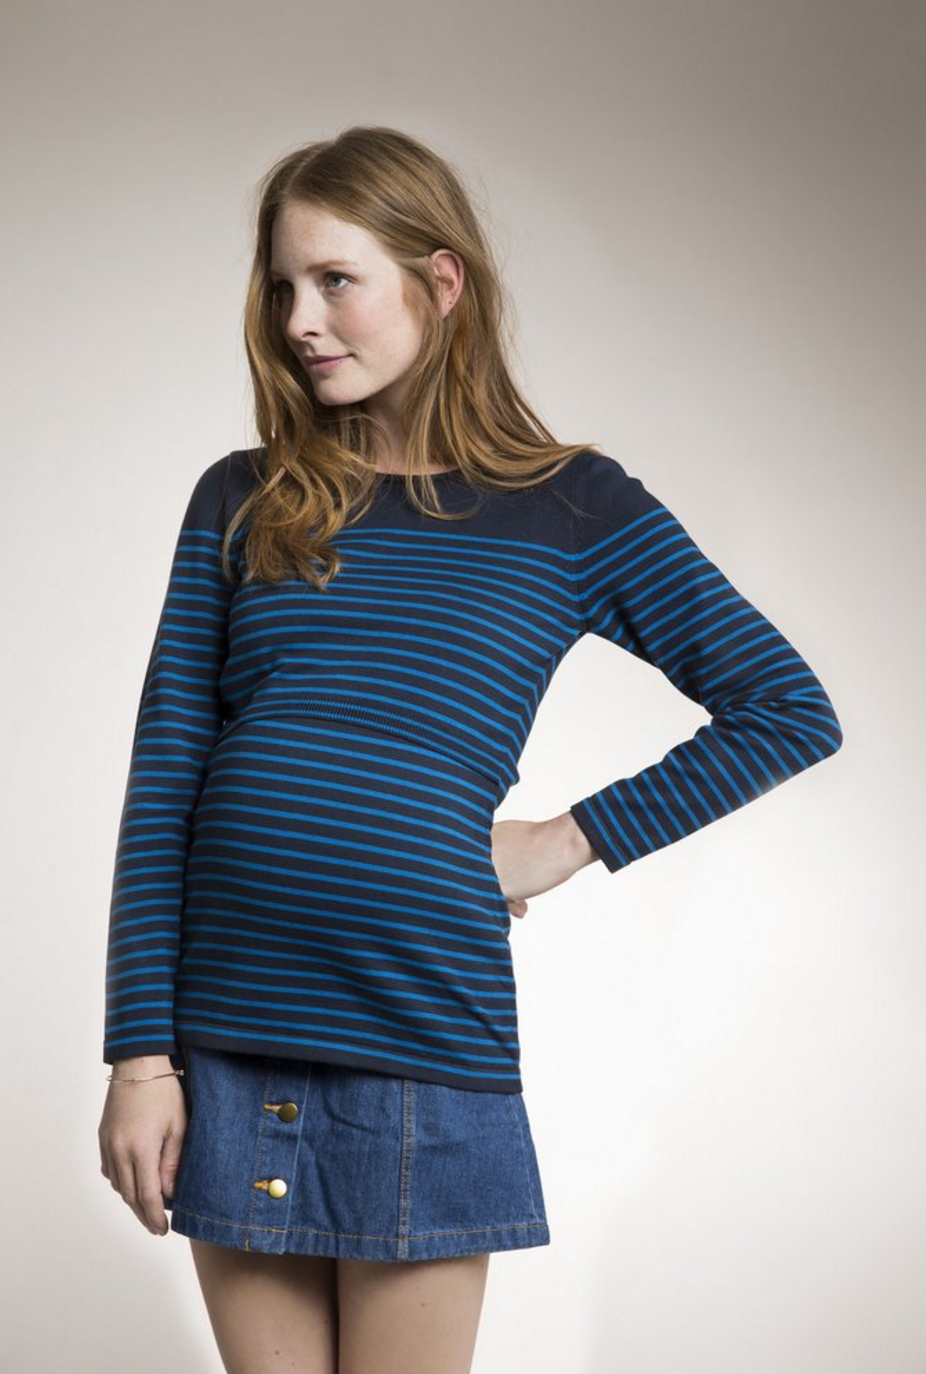 Knitted maternity/nursing jumper with stripes [it] Golf per la gravidanza e l'allattamento a righe